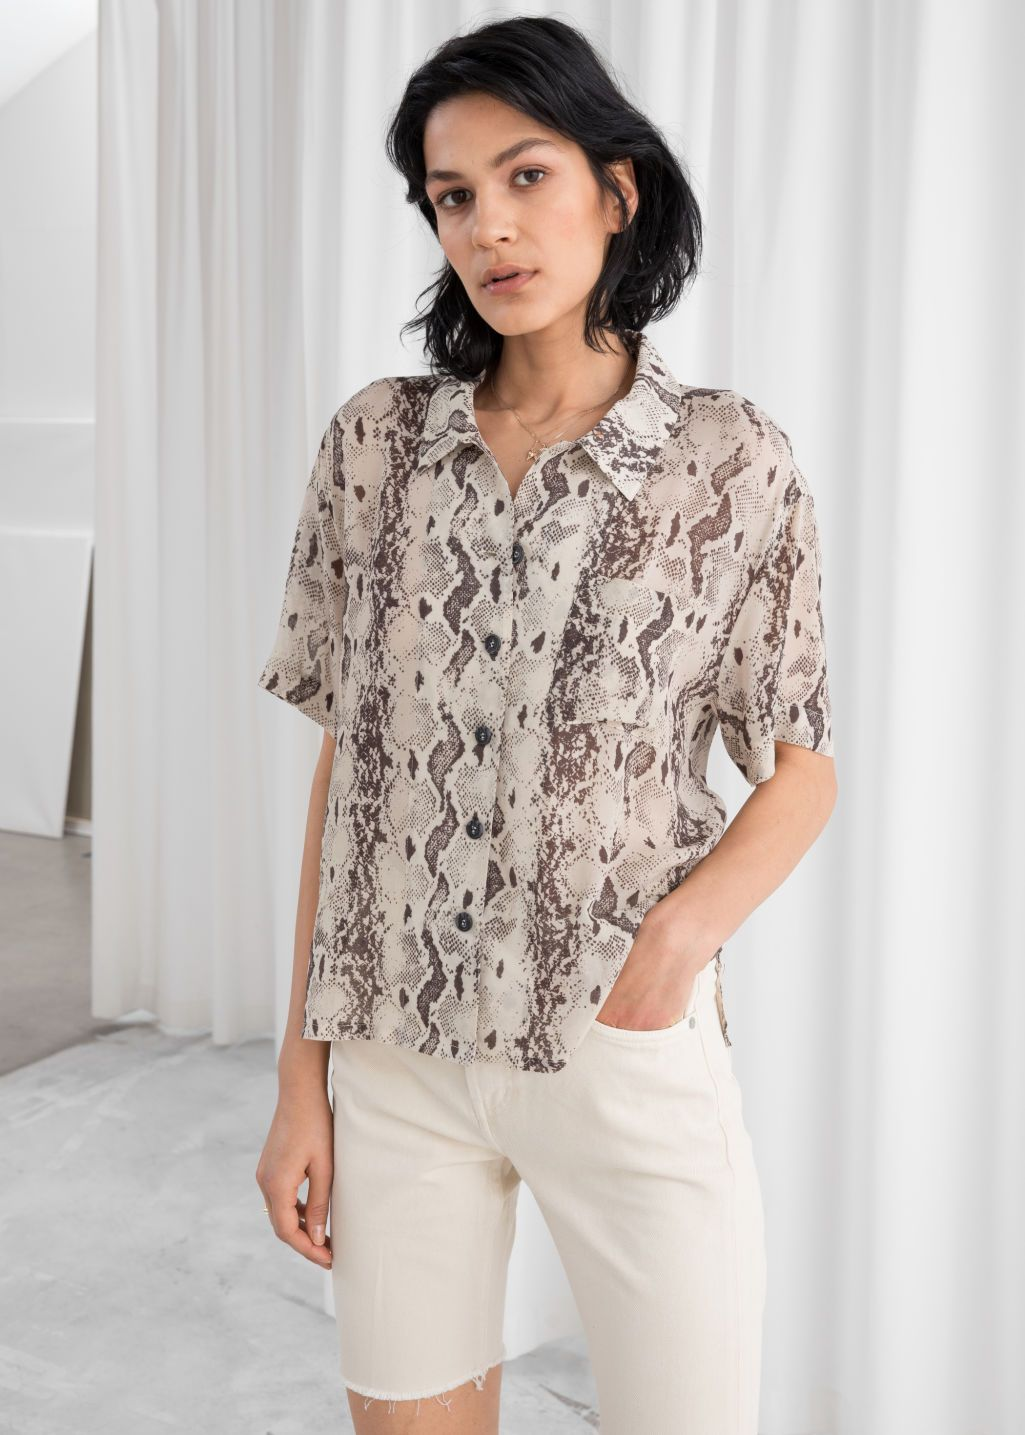 e8f833fb56ad1 Sheer Snake Print Button Up Shirt - Snake Print - Shirts -   Other Stories